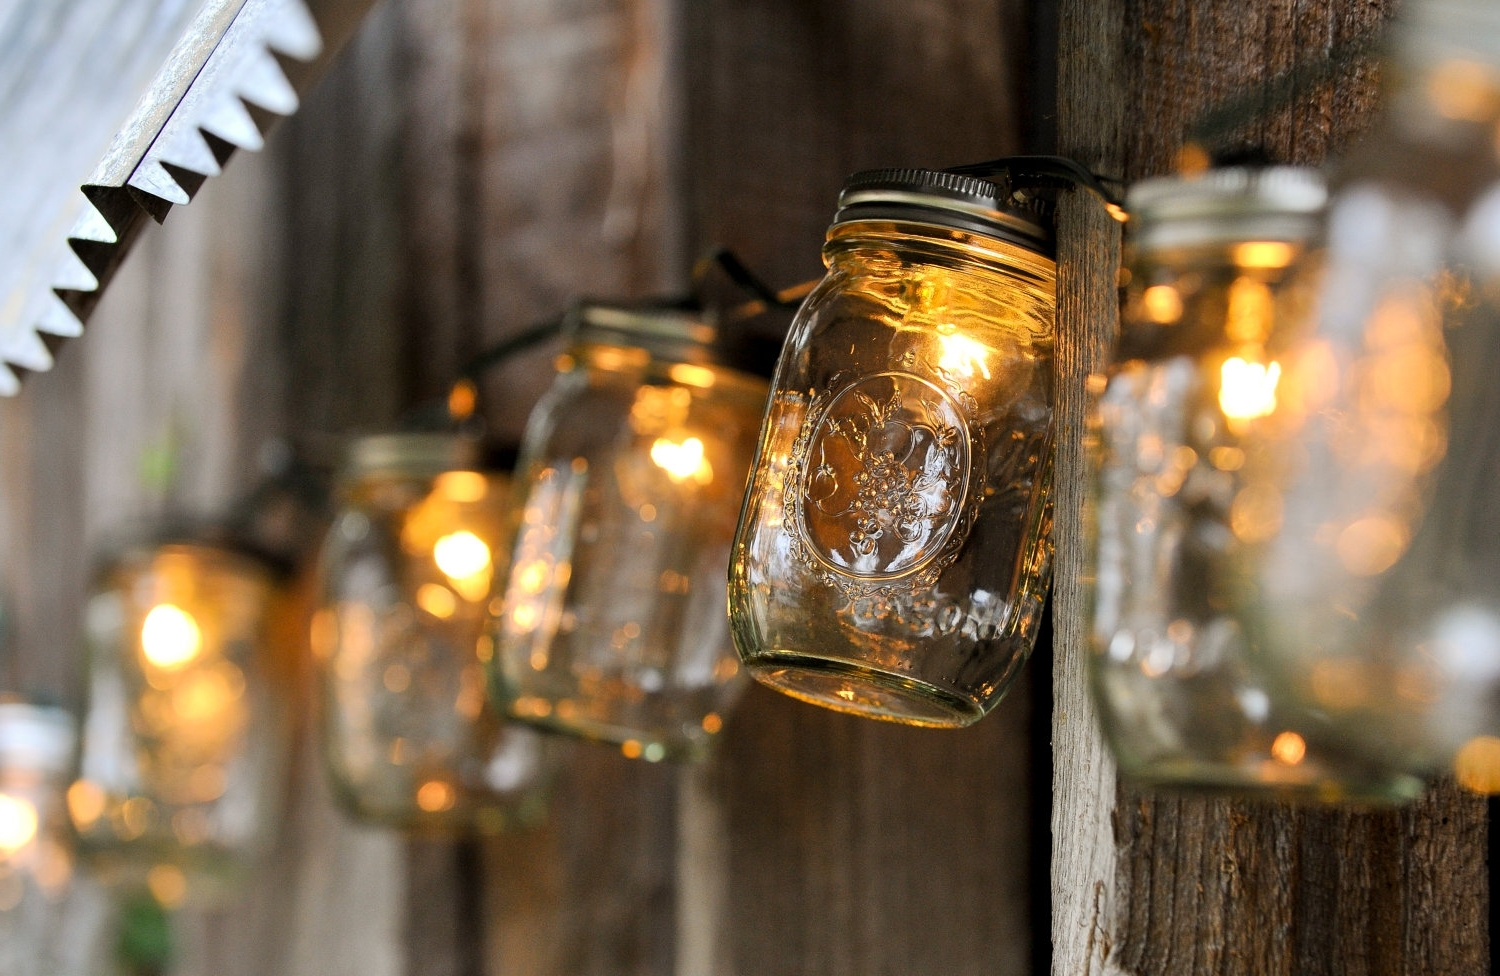 27 Things To Do With String Lights (View 5 of 20)